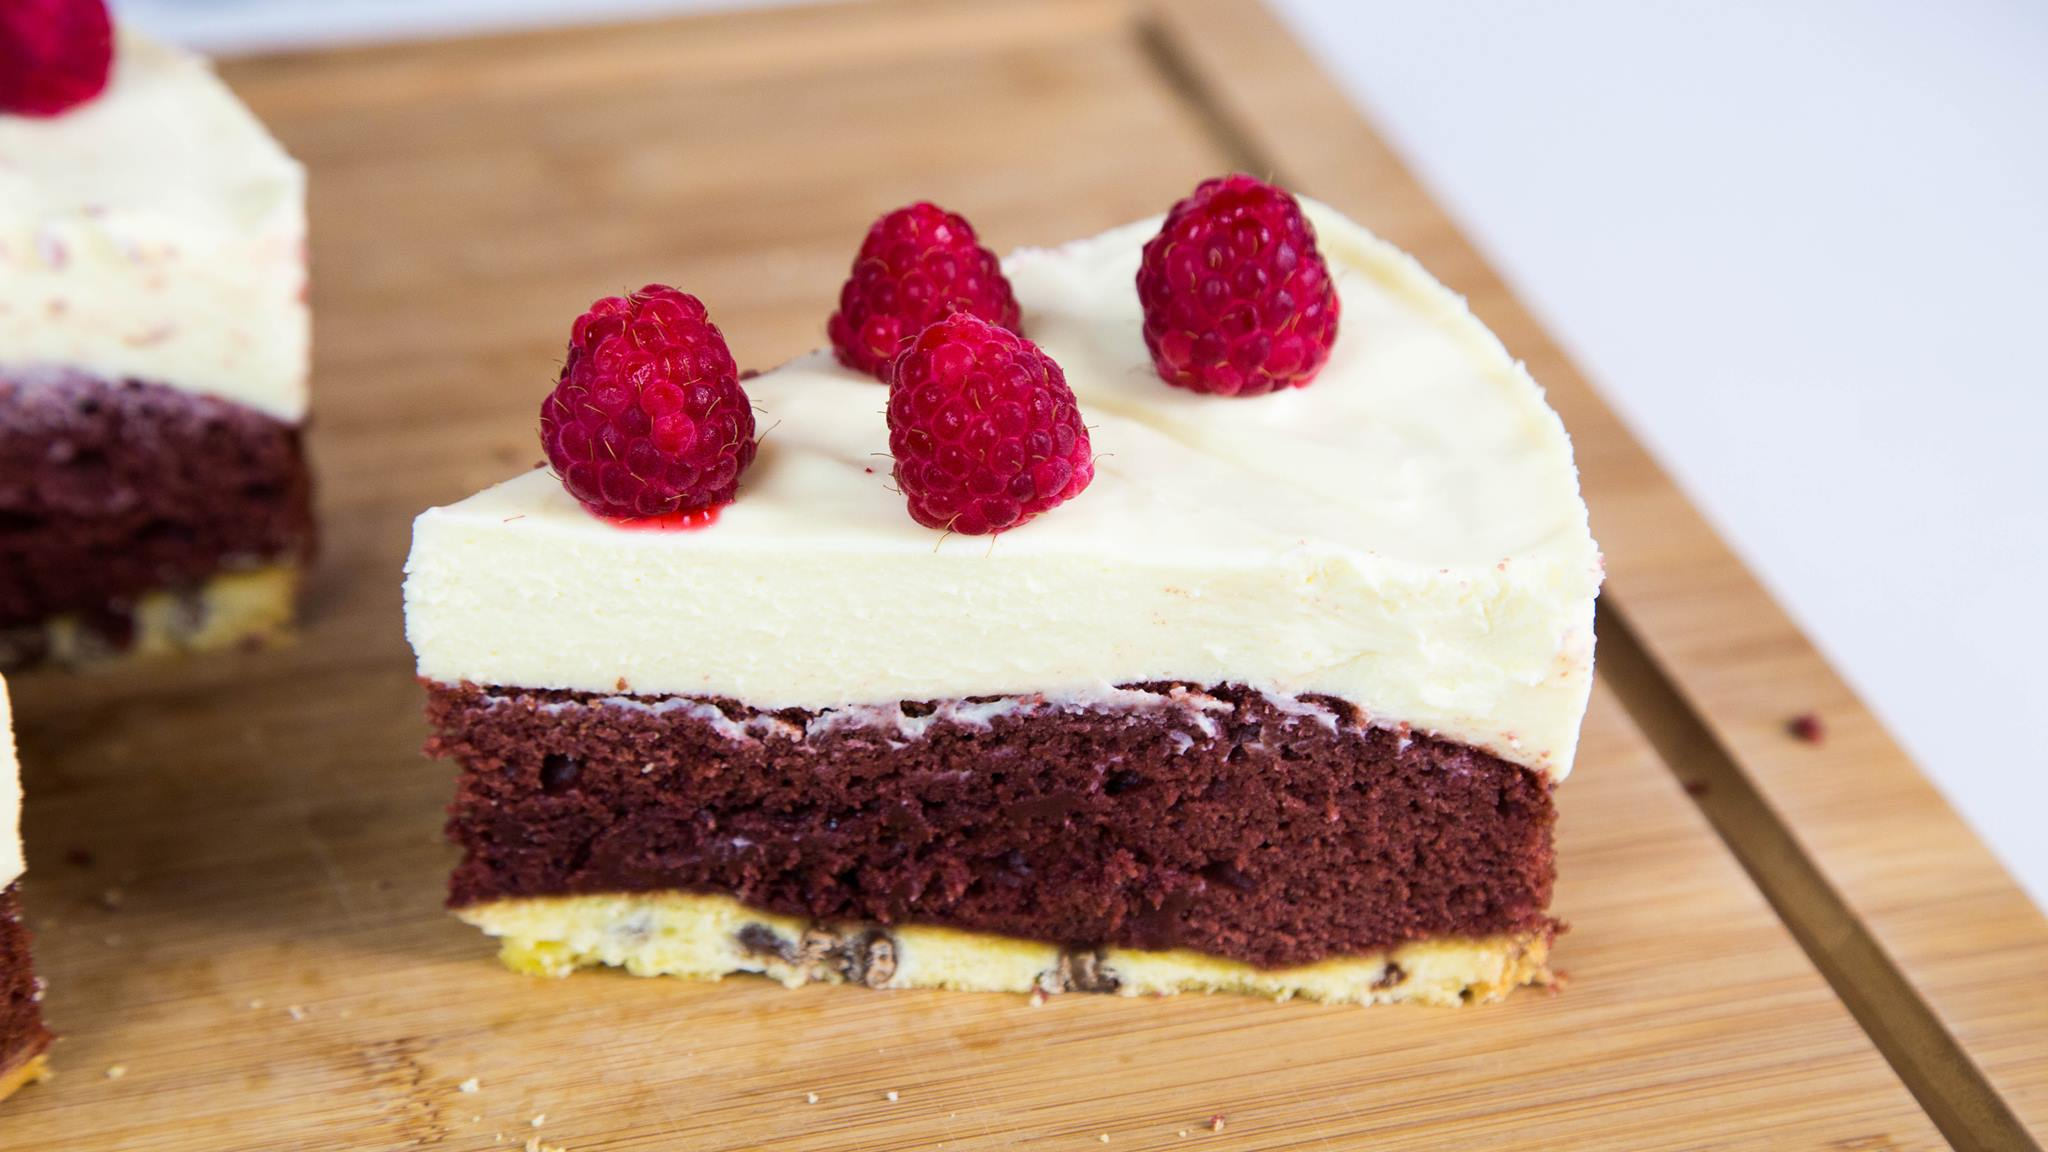 Heres How To Make Red Velvet And White Chocolate Cookie Cake 14139239 10208869642475987 1311936533 o